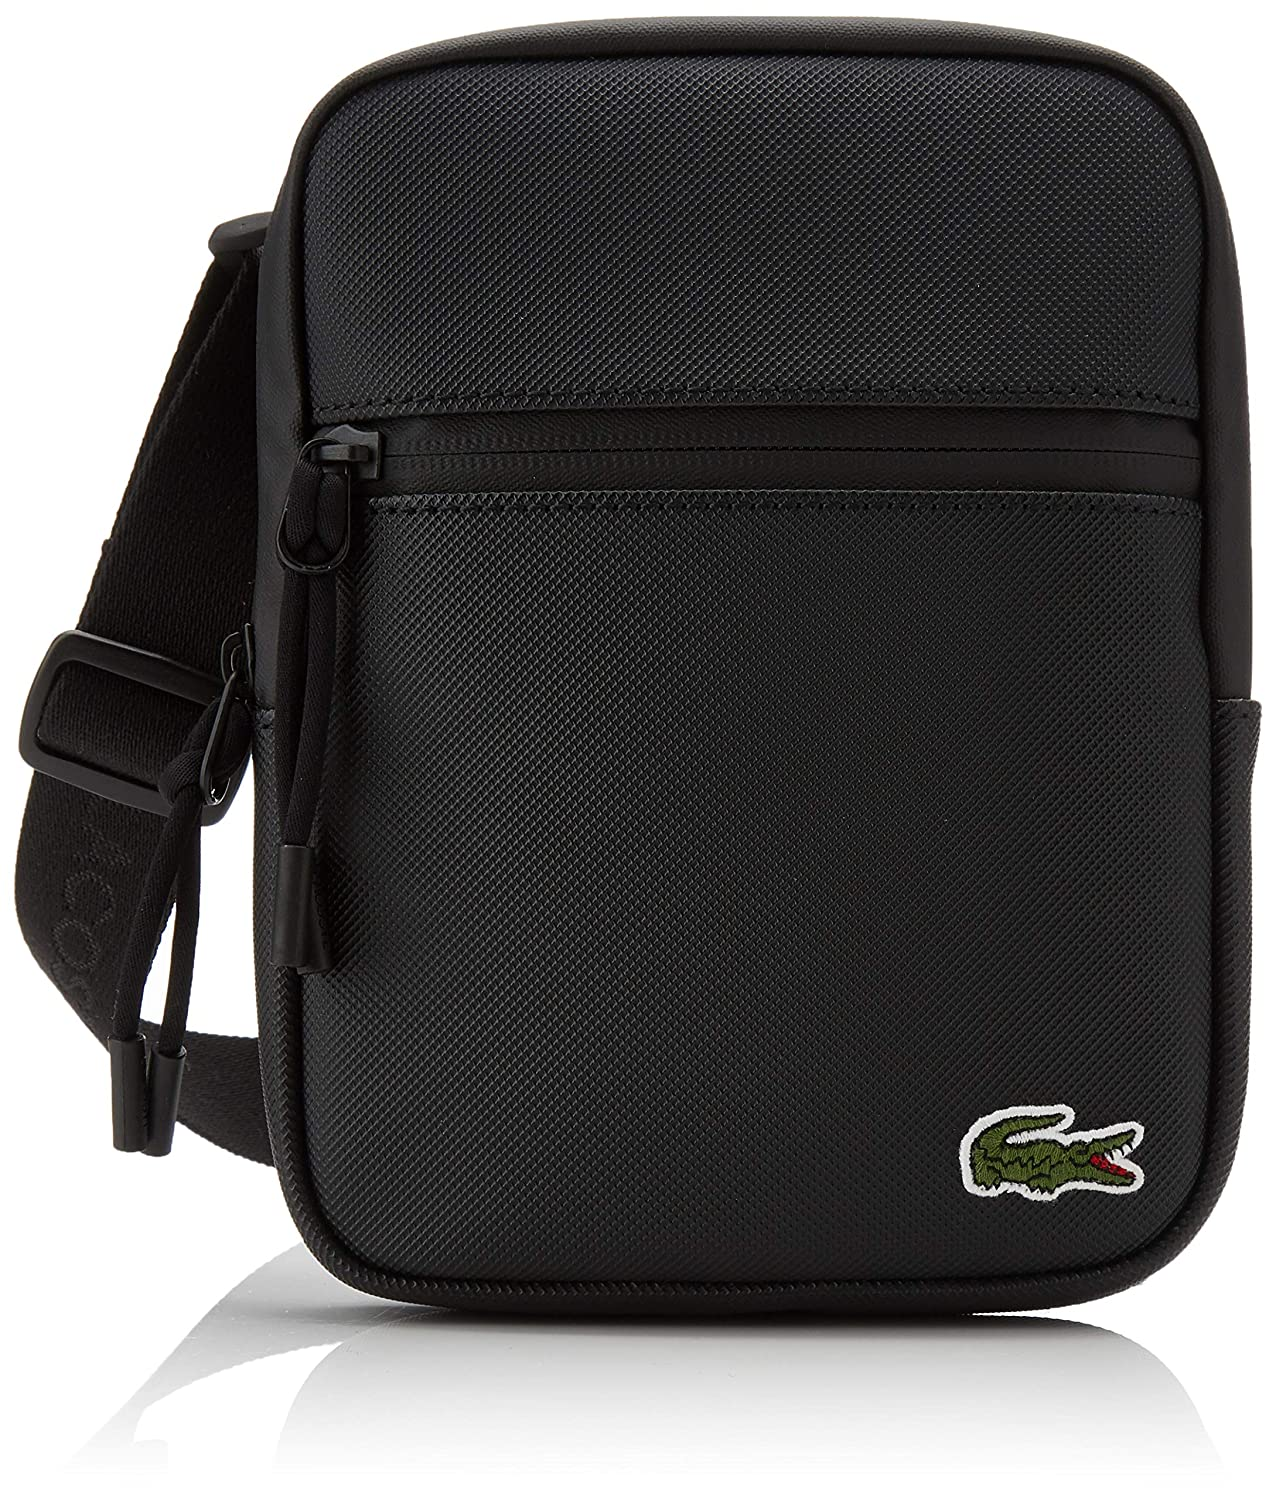 8bb2a02dca Lacoste Men's NH2884PO Shoulder Bag Black Size: One Size: Amazon.co.uk:  Shoes & Bags